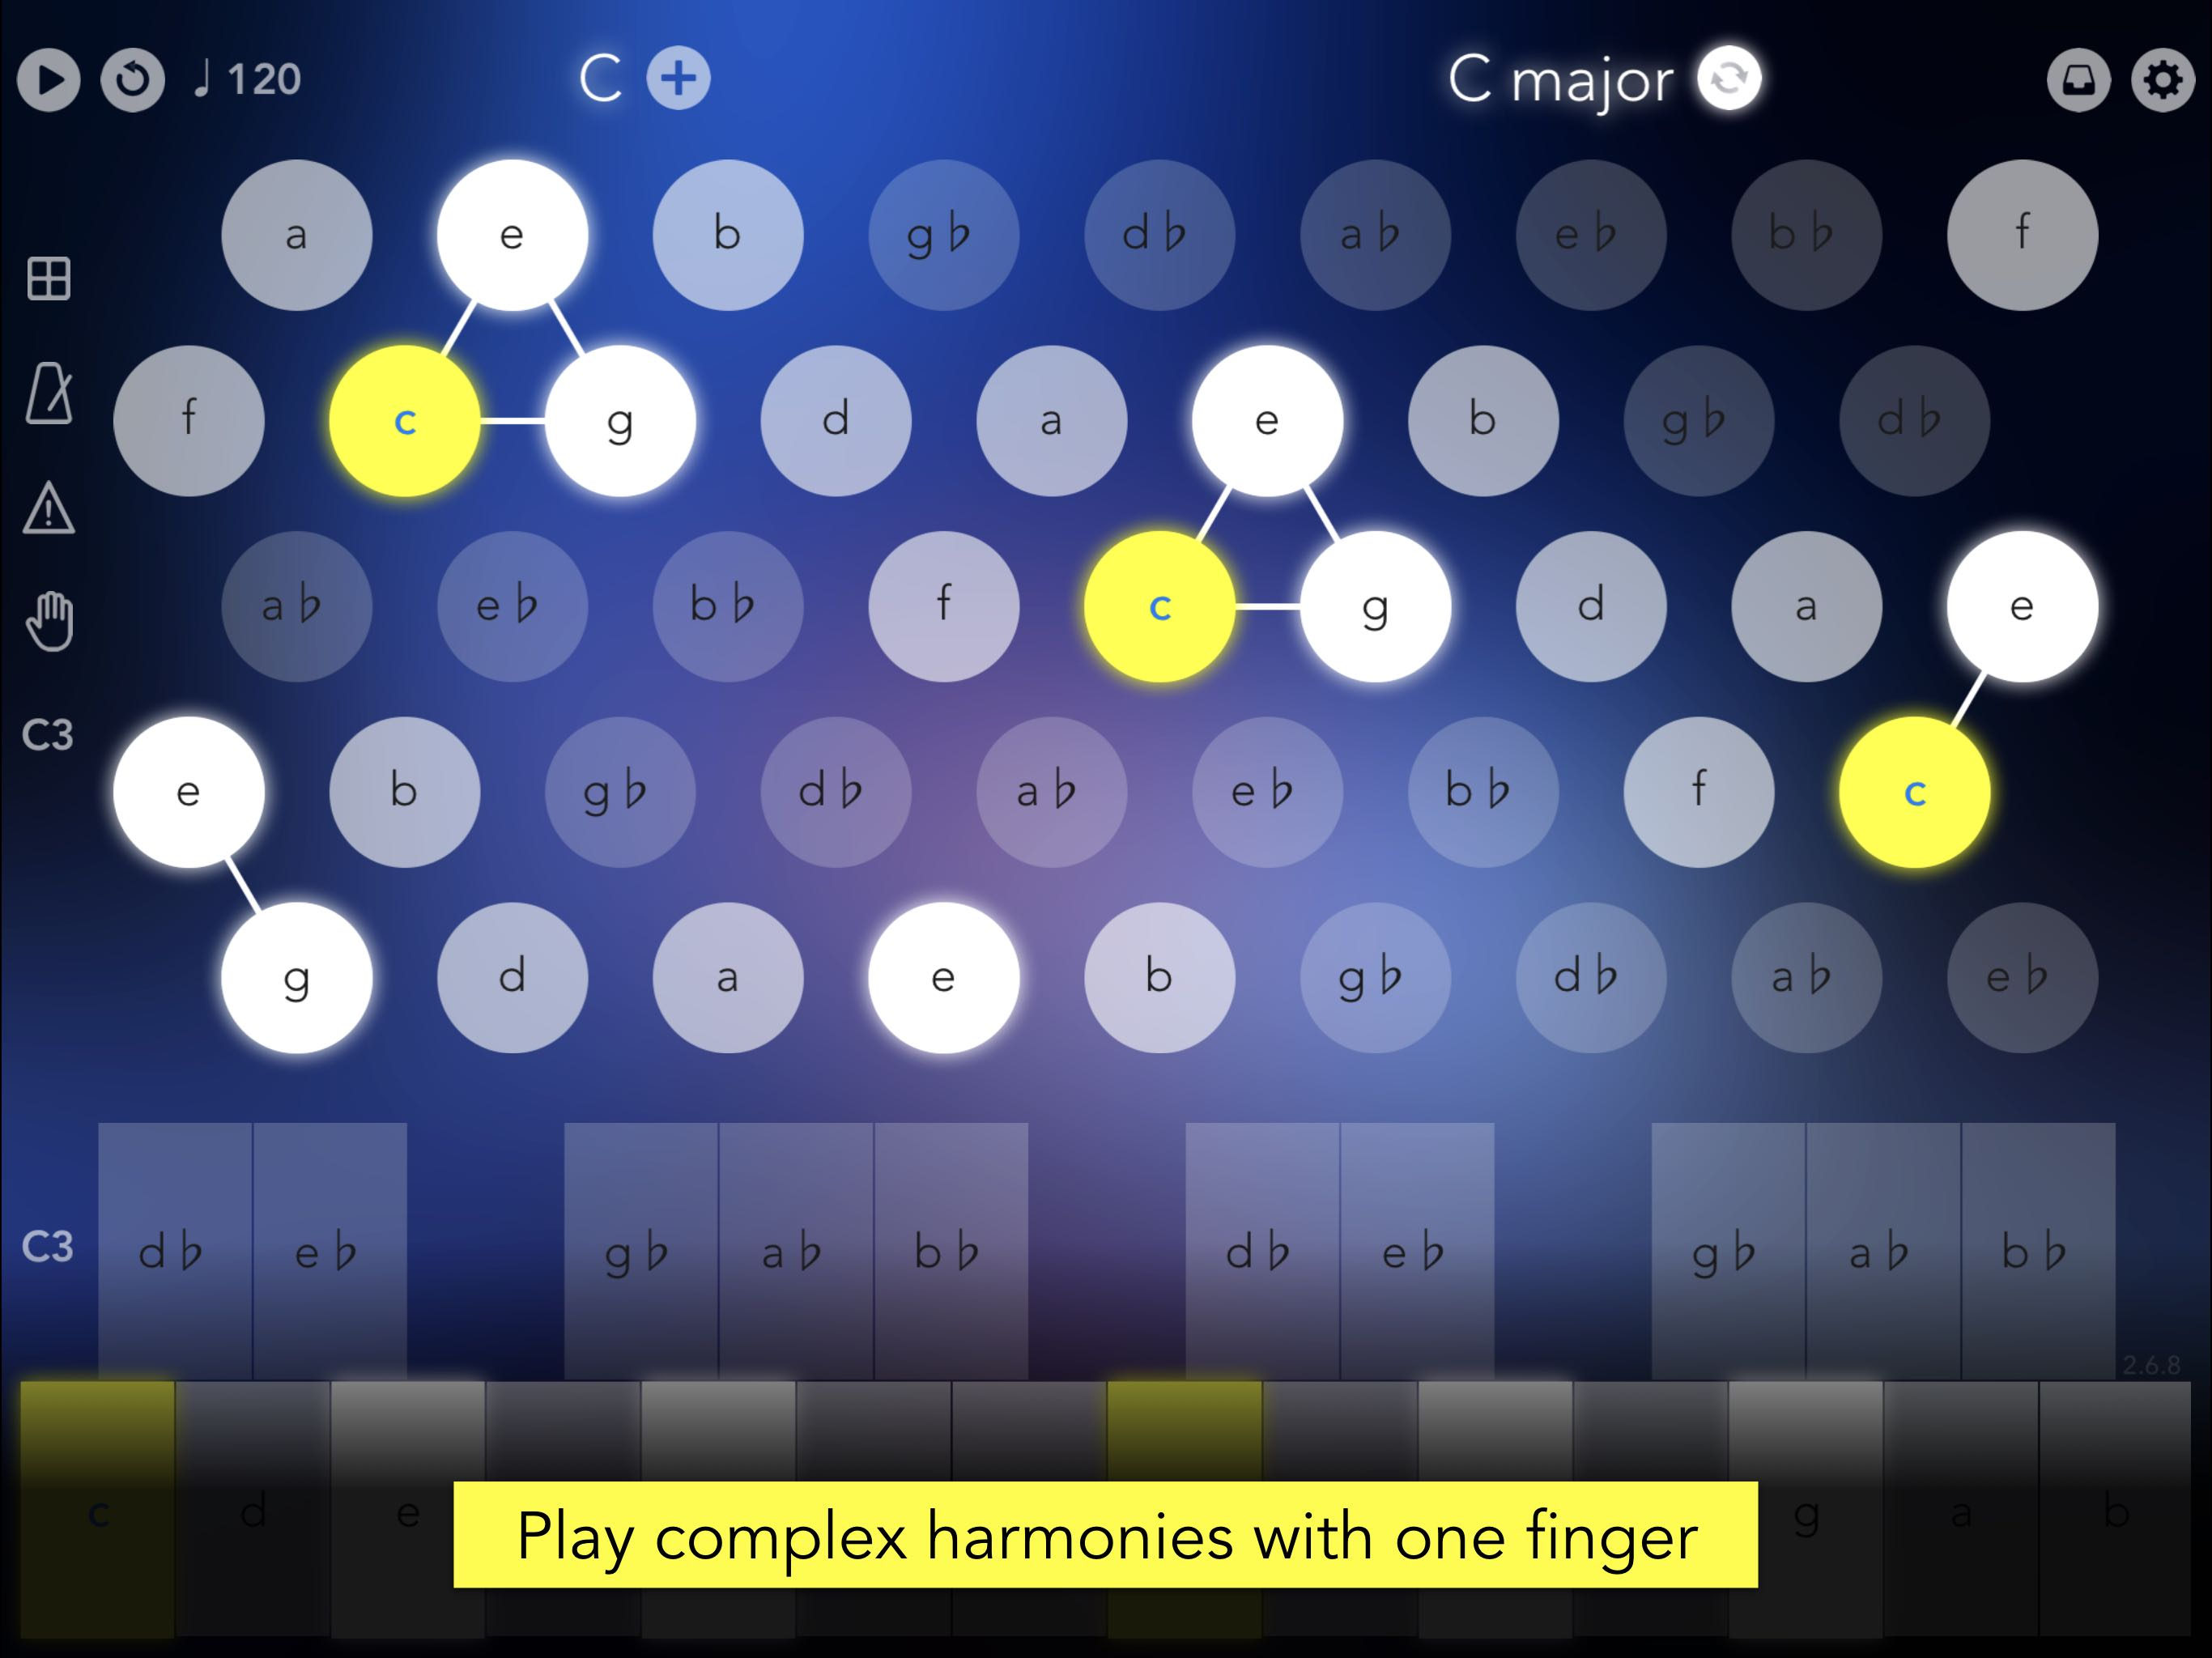 kvr navichord lite chord sequencer and midi controller by denis kutuzov chord sequencer. Black Bedroom Furniture Sets. Home Design Ideas